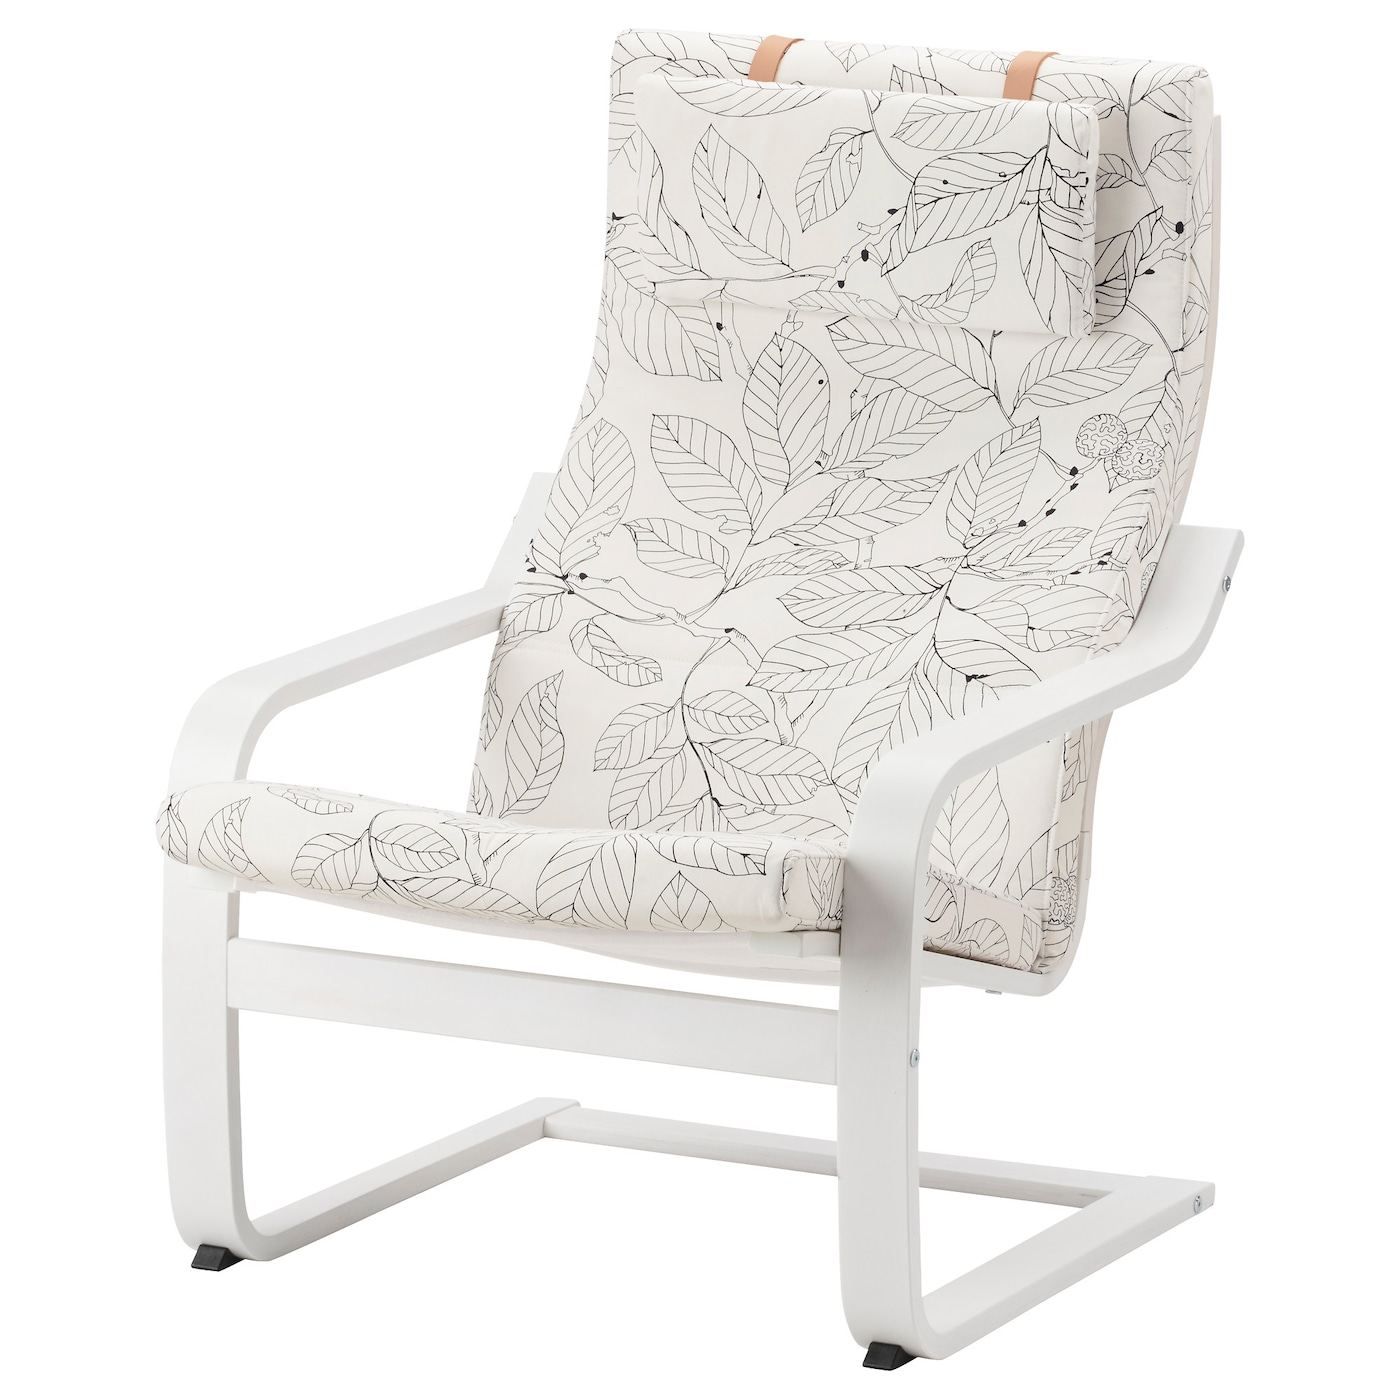 White comfy chairs - Ikea Po Ng Armchair The Cover Is Easy To Keep Clean As It Is Removable And Can